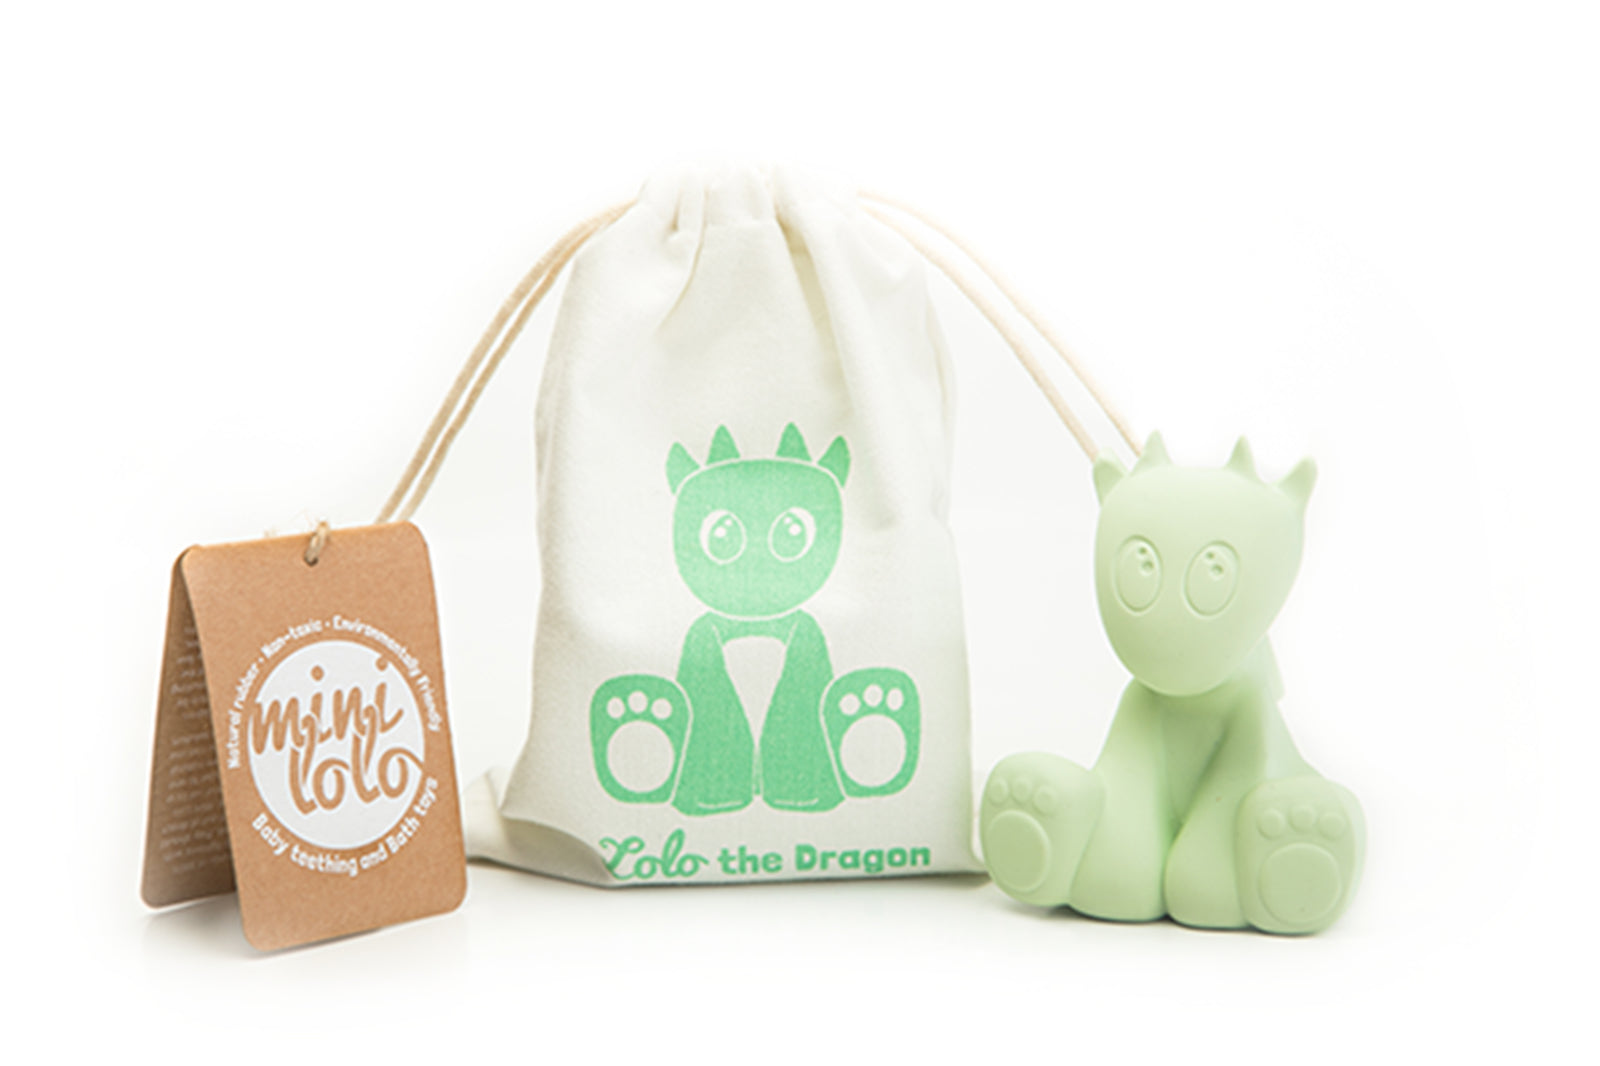 Mint Green Lolo the Dragon Teething and Bath Toy with Pouch